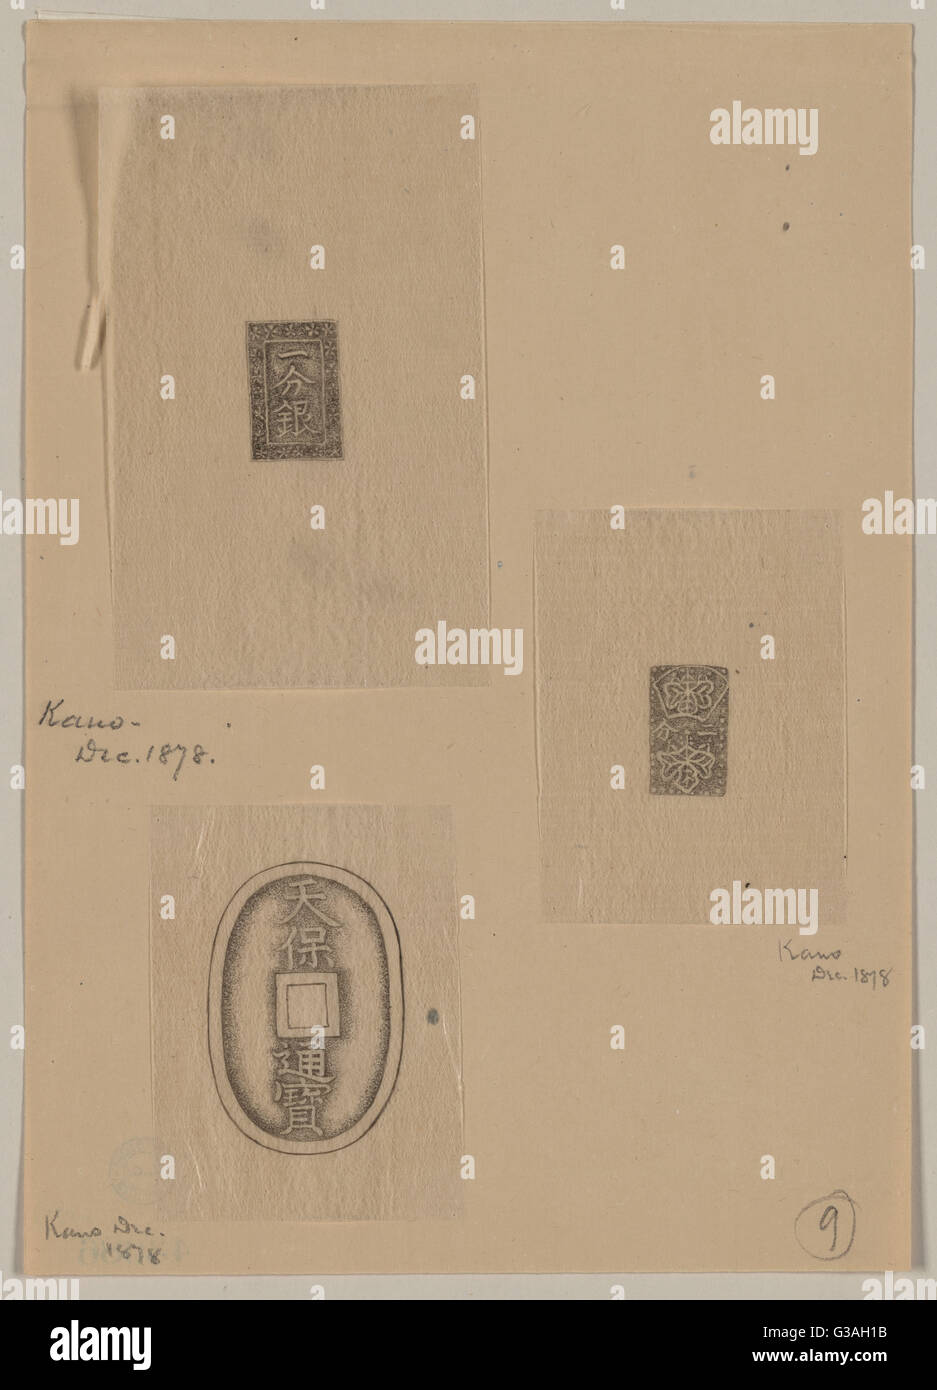 Design drawings of seals or other marks for commercial enterprises. Date 1878 Dec. - Stock Image